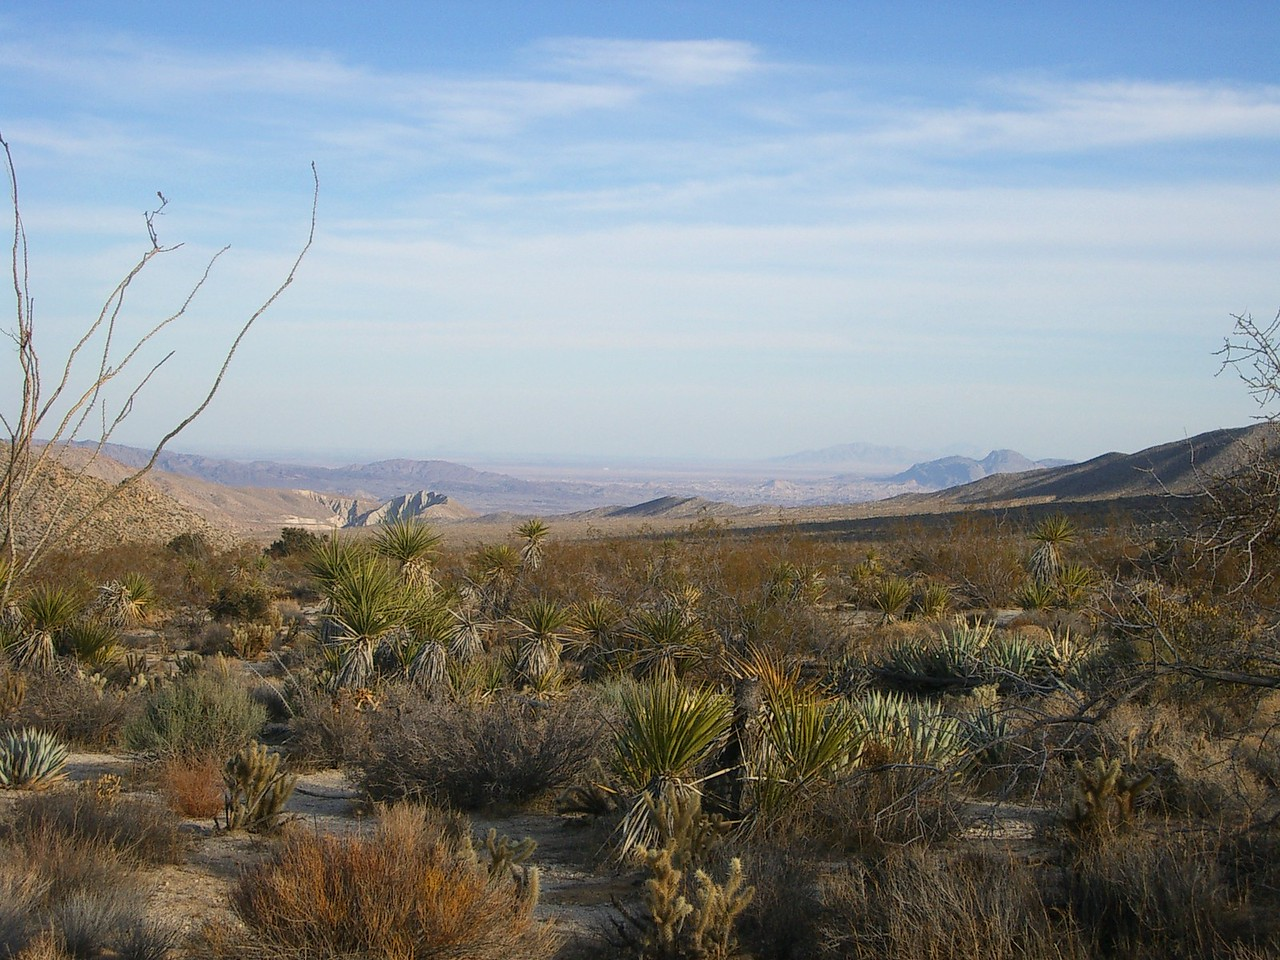 Ahhh... the desert has a sense of peace  and tranquility of its own.